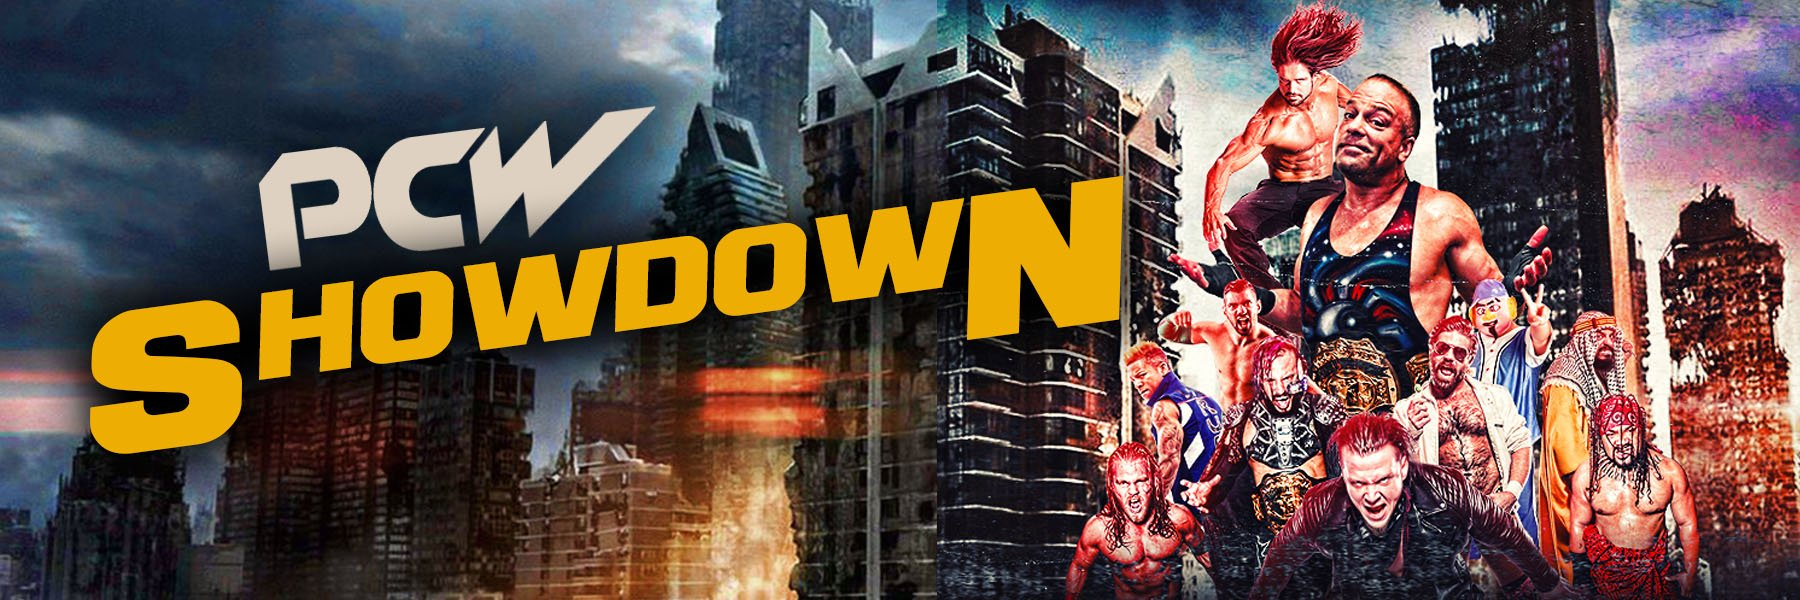 PCW: SHOWDOWN (6/2/17) SUBSCRIBE $4.99/mo - RENT $2.99 - $BUY $9.99